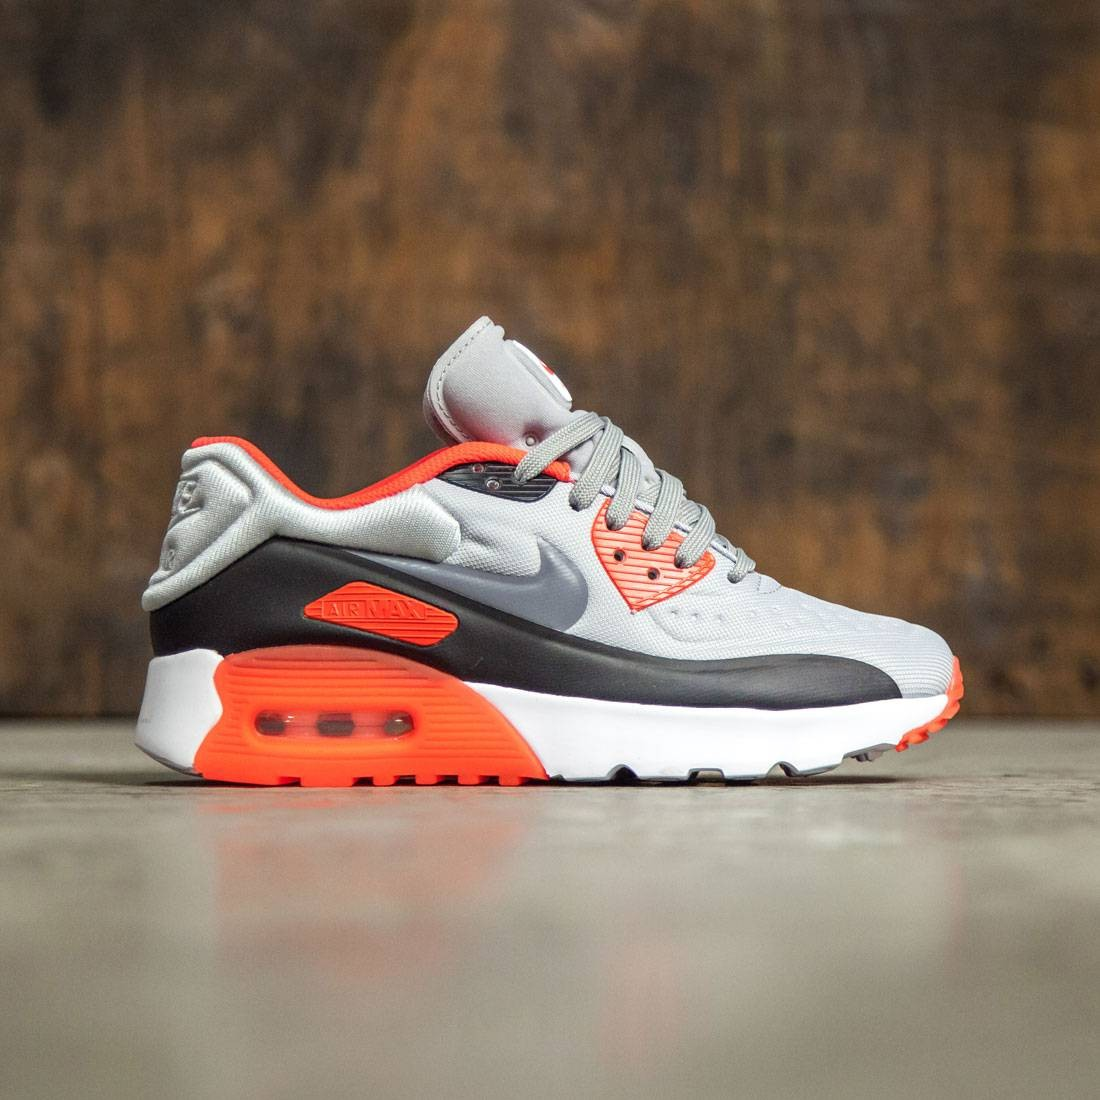 f3098cd65f63 Nike Big Kids Nike Air Max 90 Ultra Se (Gs) (wolf grey   cool grey-bright  crimson-black)